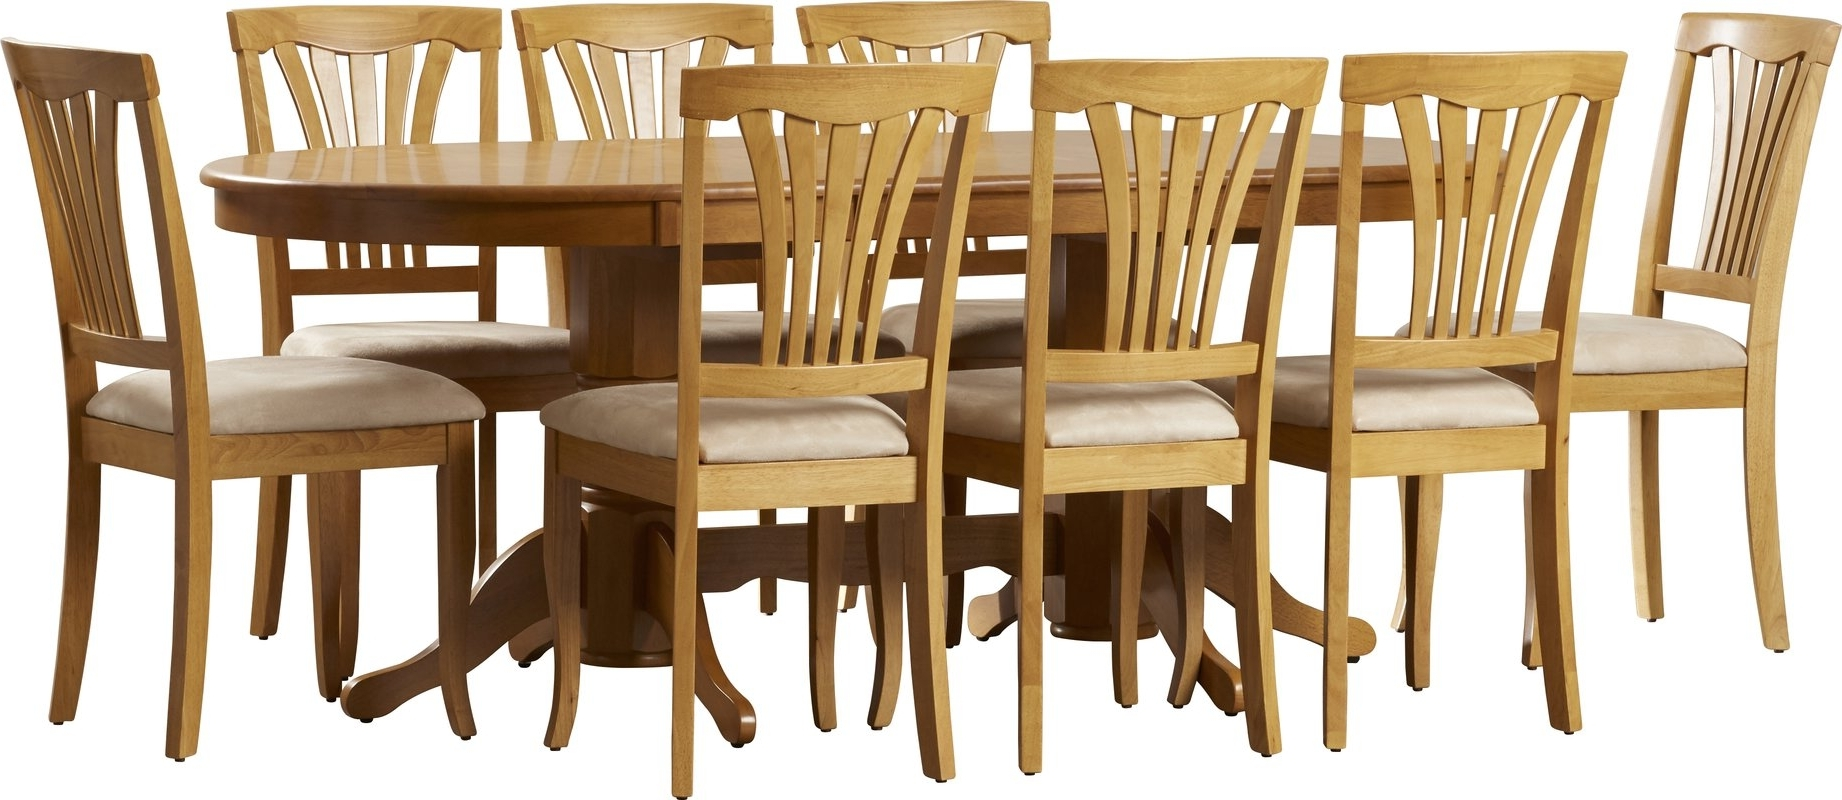 [%100+ [ 9 Piece Dining Room Sets ] | 100 9 Pc Dining Room Sets Lark Inside Best And Newest Caira 7 Piece Rectangular Dining Sets With Diamond Back Side Chairs|Caira 7 Piece Rectangular Dining Sets With Diamond Back Side Chairs Pertaining To Most Popular 100+ [ 9 Piece Dining Room Sets ] | 100 9 Pc Dining Room Sets Lark|Famous Caira 7 Piece Rectangular Dining Sets With Diamond Back Side Chairs Regarding 100+ [ 9 Piece Dining Room Sets ] | 100 9 Pc Dining Room Sets Lark|2018 100+ [ 9 Piece Dining Room Sets ] | 100 9 Pc Dining Room Sets Lark Intended For Caira 7 Piece Rectangular Dining Sets With Diamond Back Side Chairs%] (View 22 of 25)